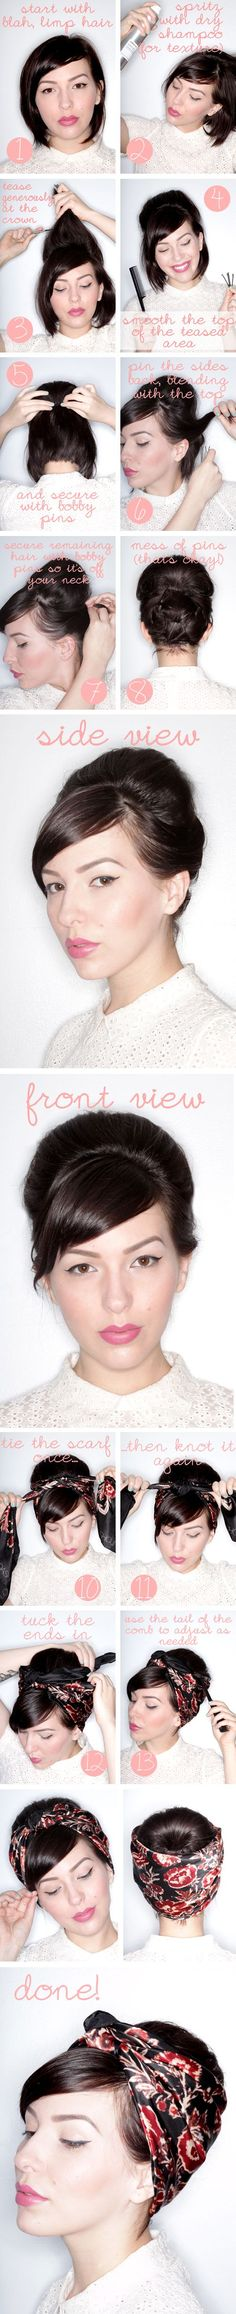 Faux Updo Tutorial For Short Hair I need to buy some cute scarfs to do this